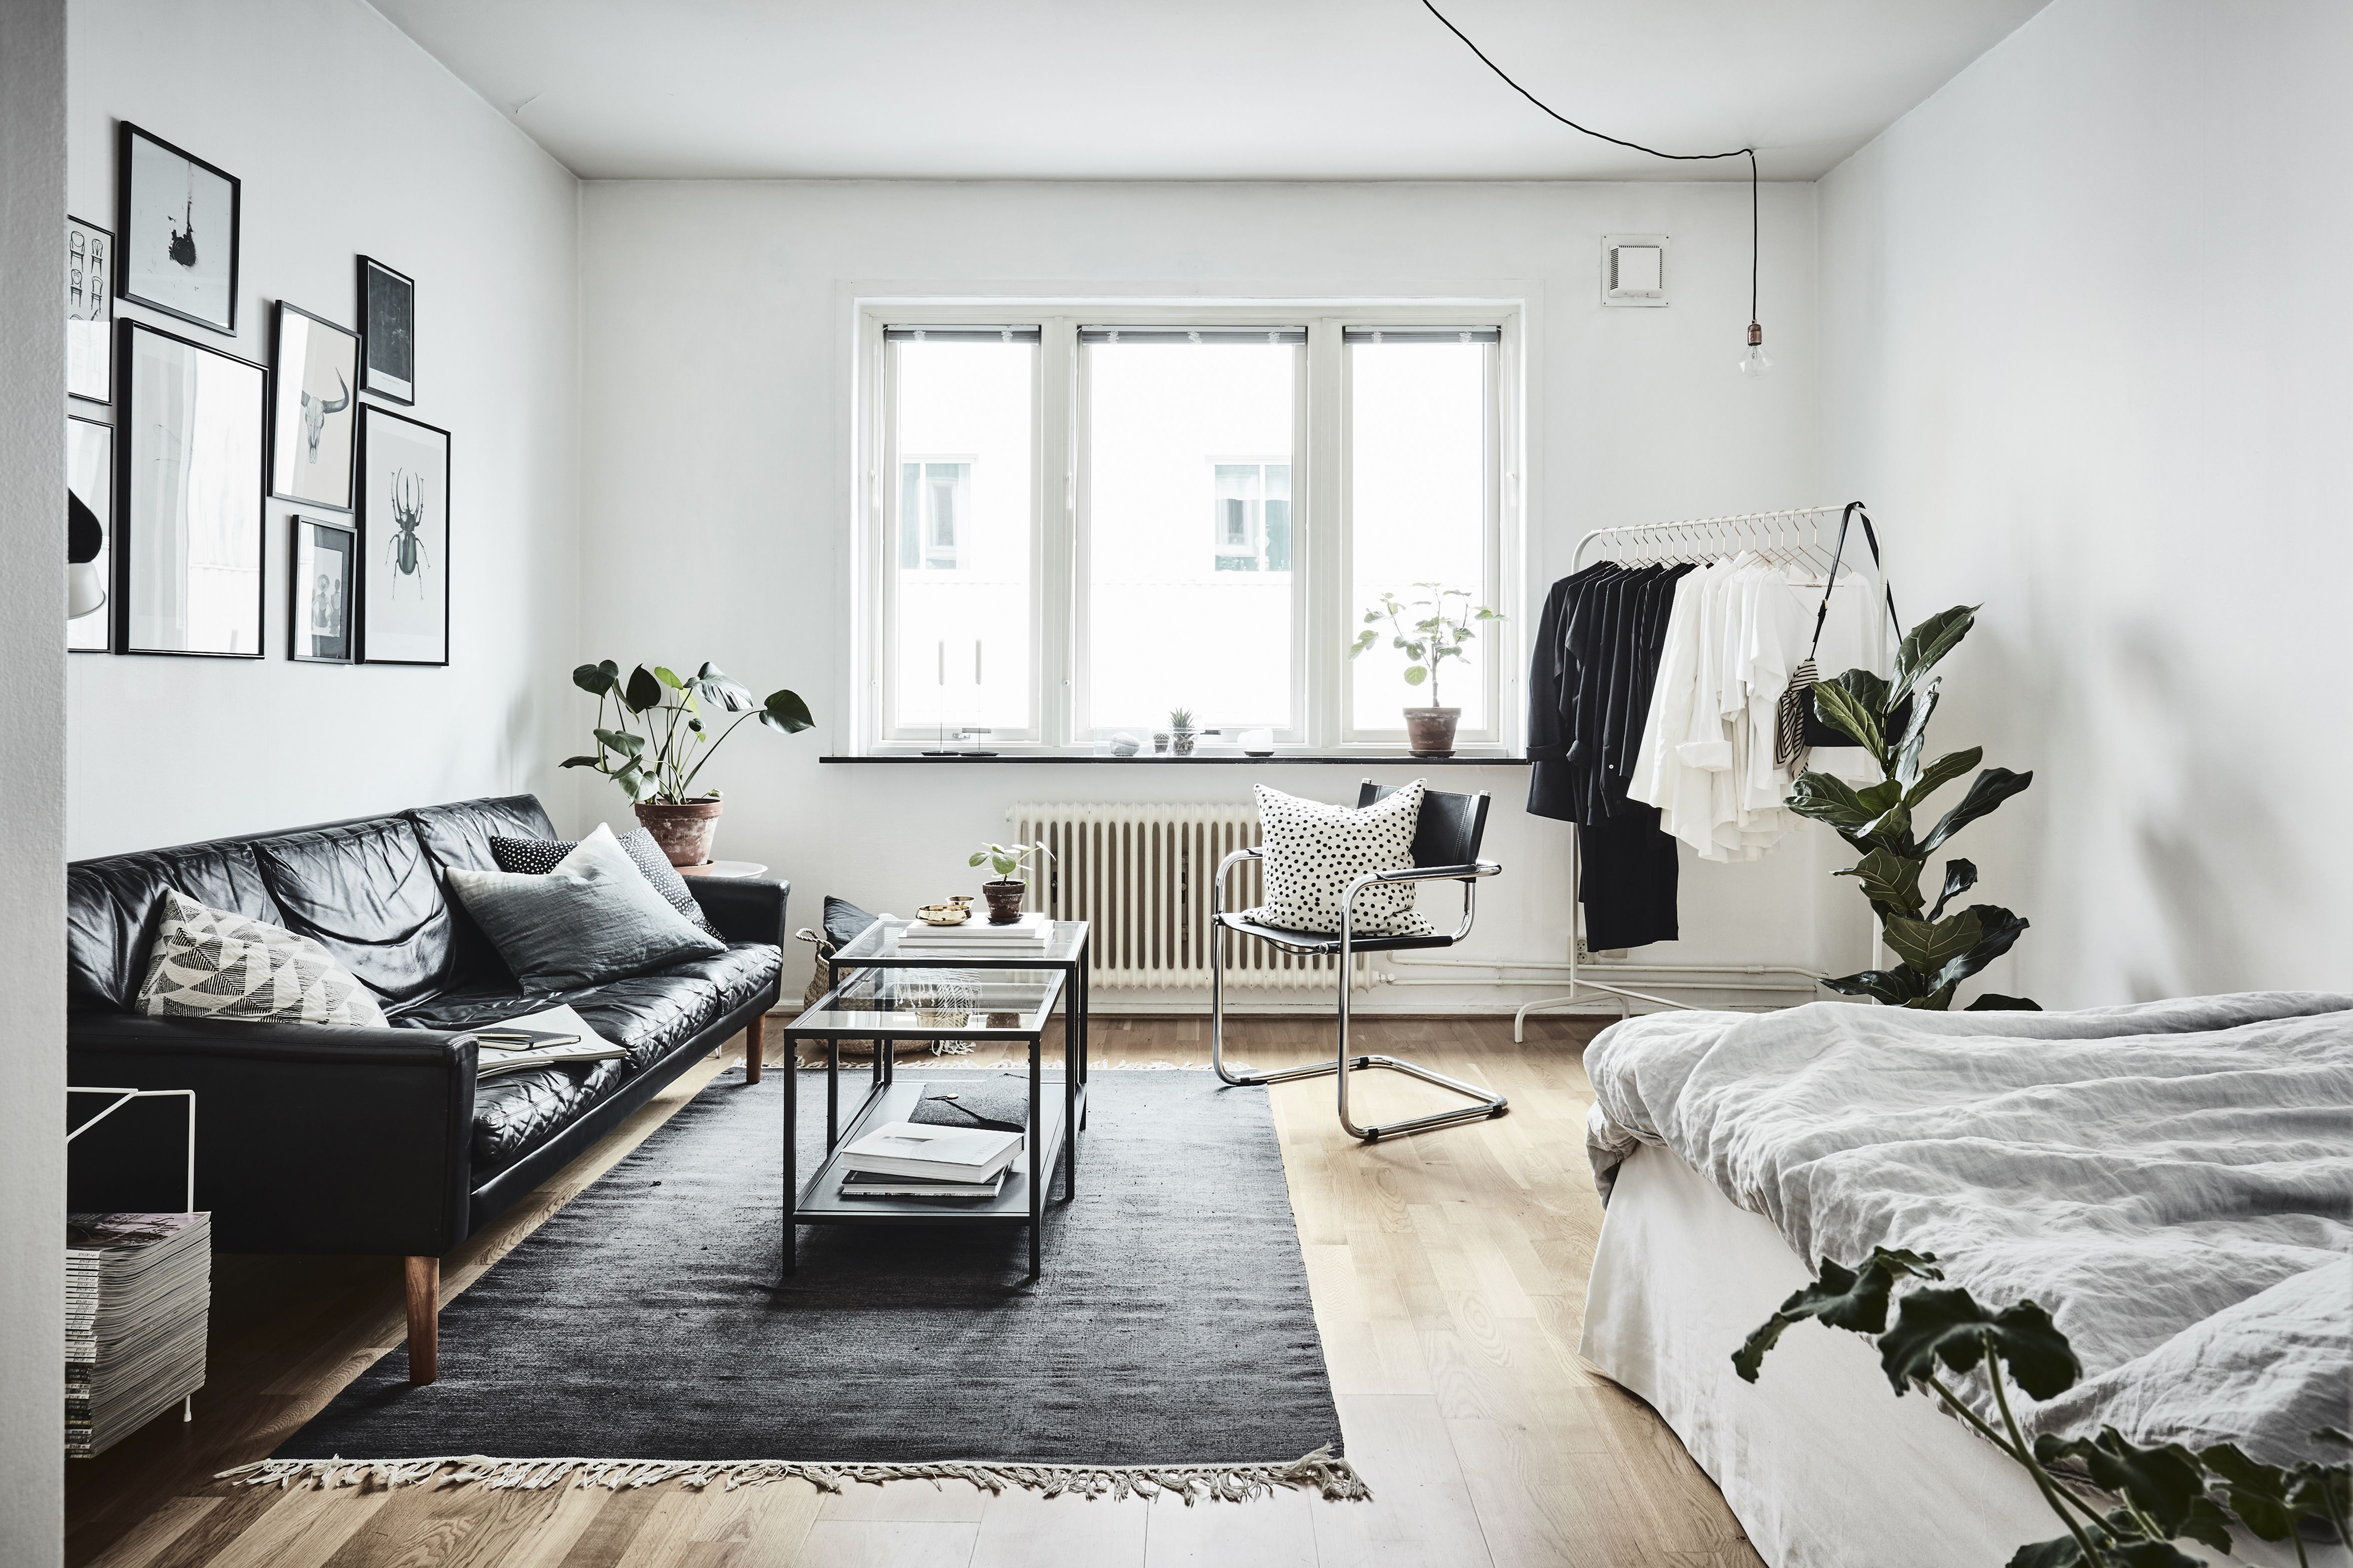 A Tour of My San Francisco Studio Apartment Advice from a 20